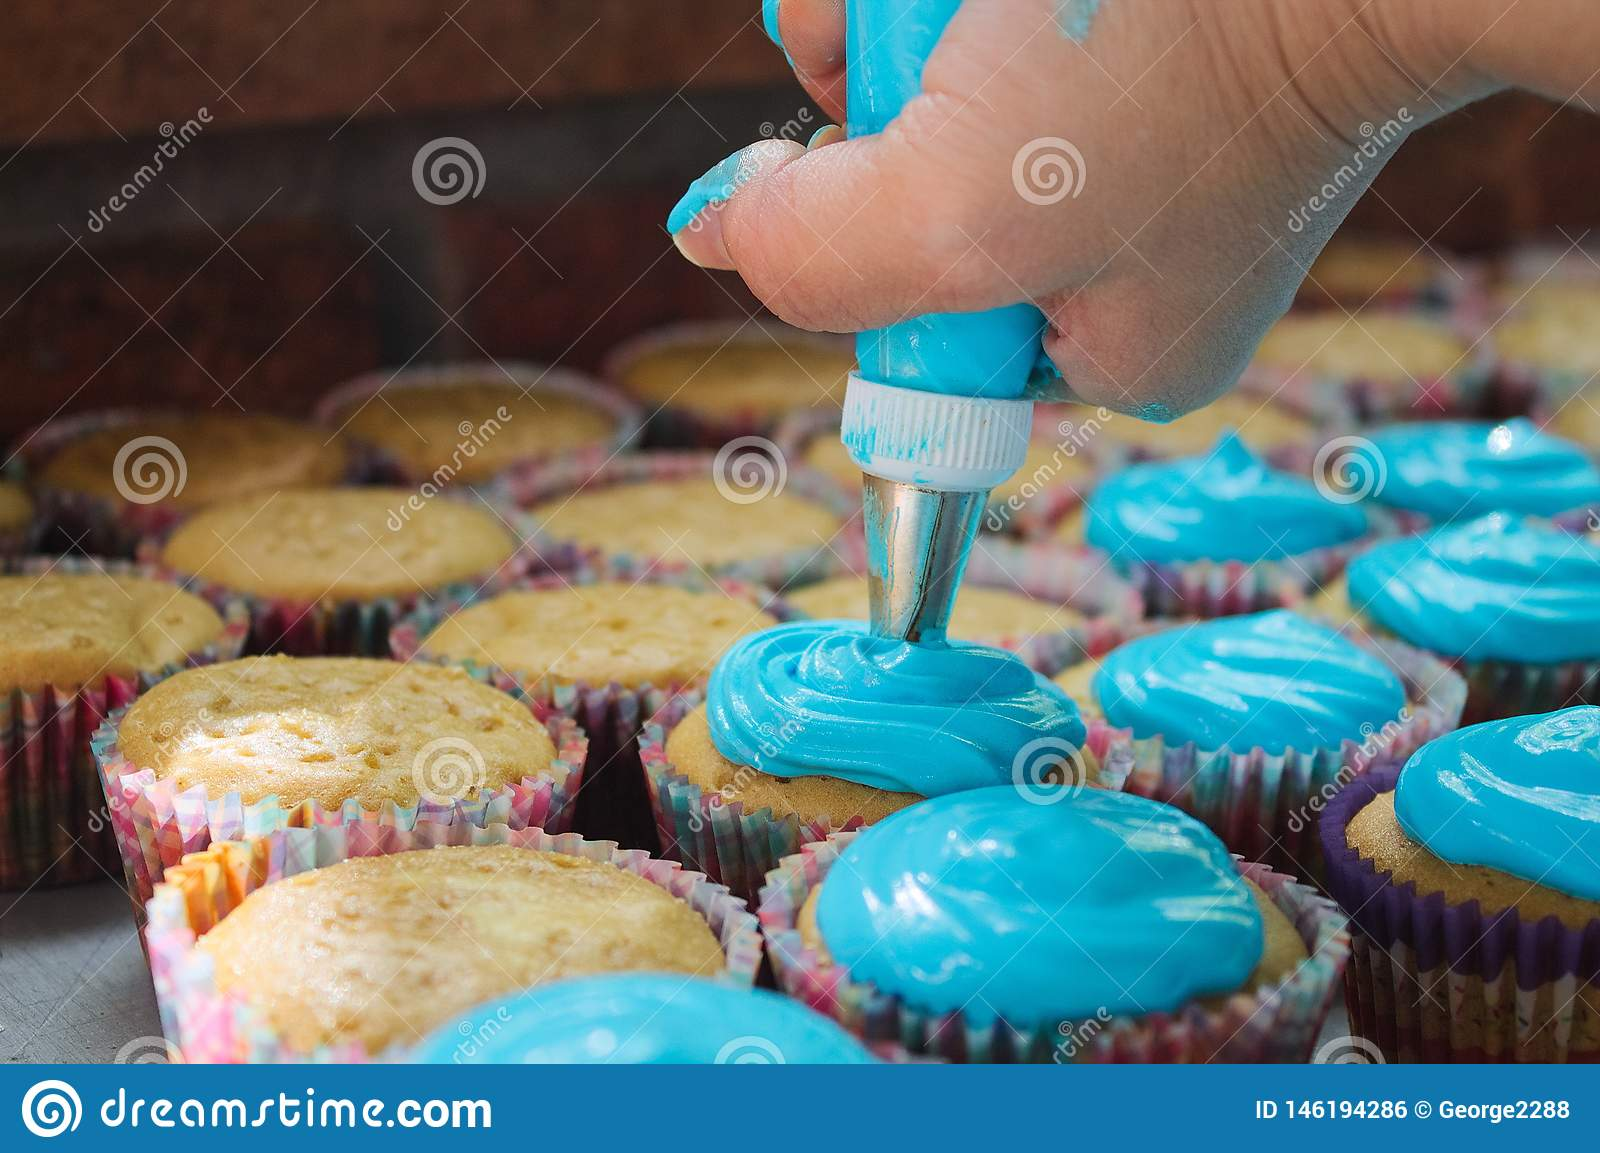 Many cutcakes being sprinkled with blue sweet cream